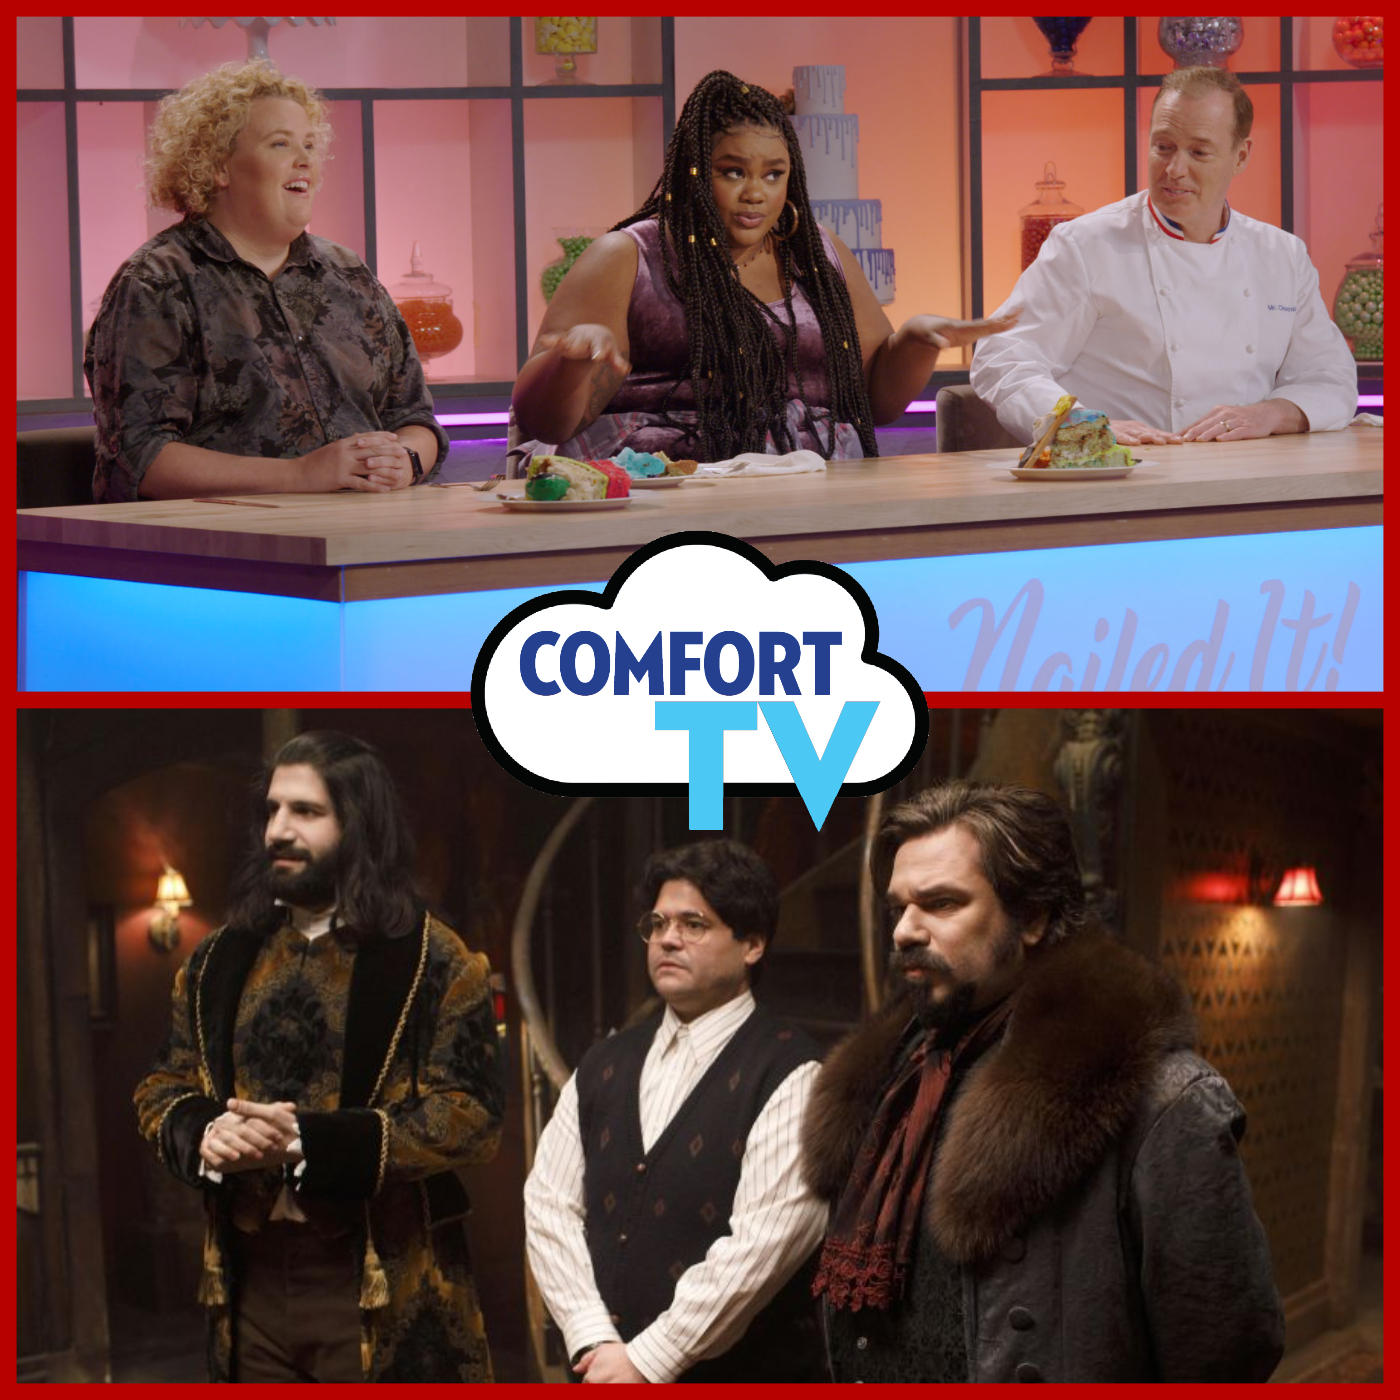 COMFORT TV: Nailed It!, What We Do in the Shadows & More!